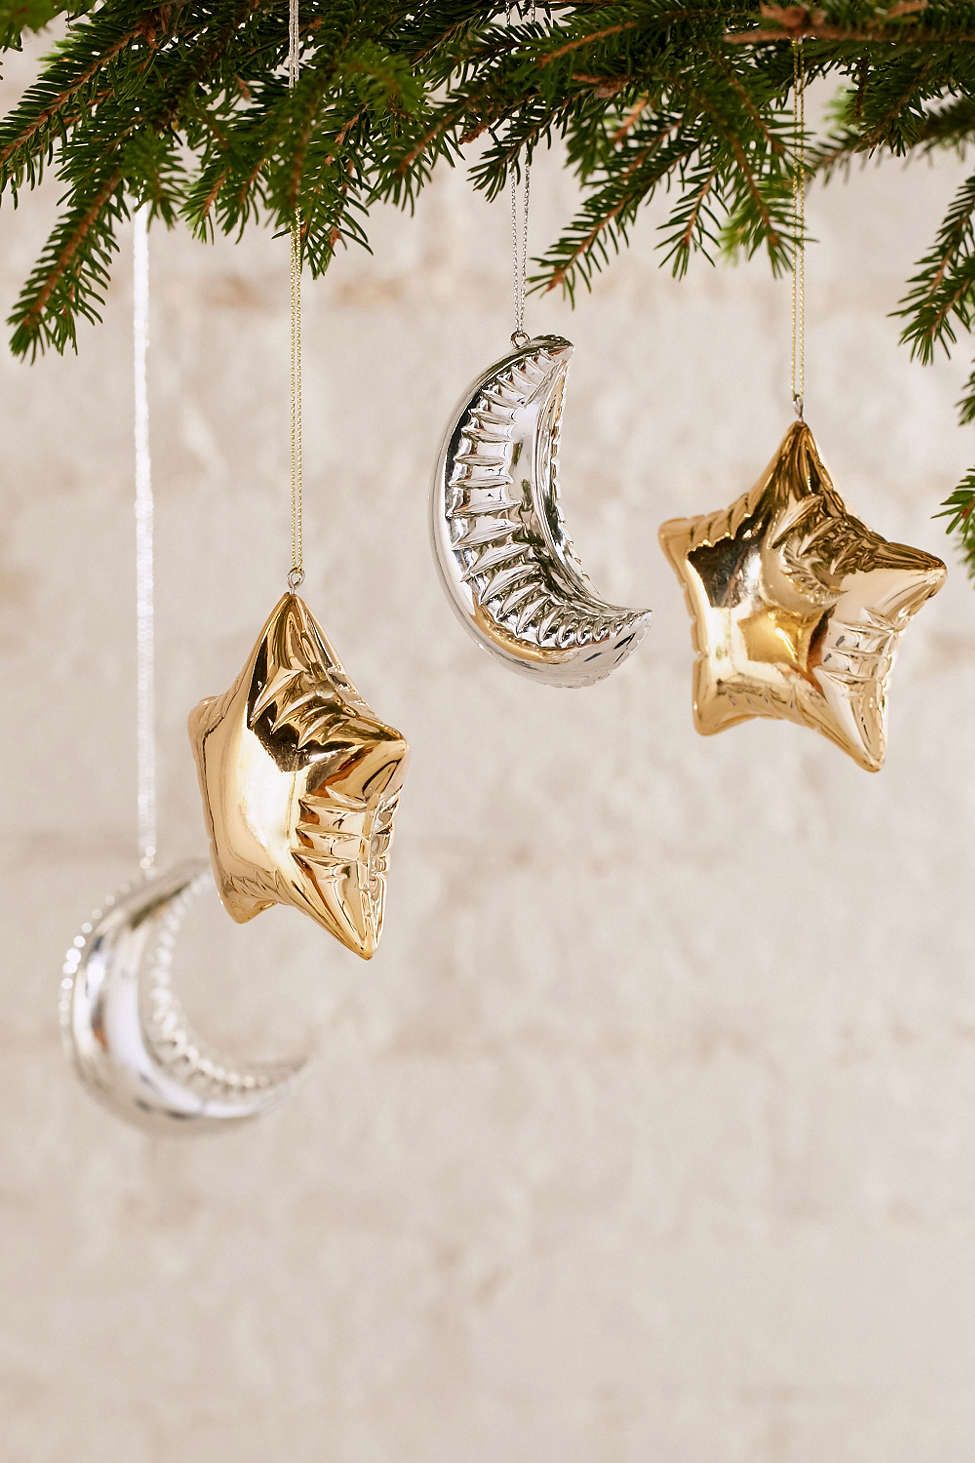 Moon And Star Balloon Ornament  Urban Outfitters  Christmas